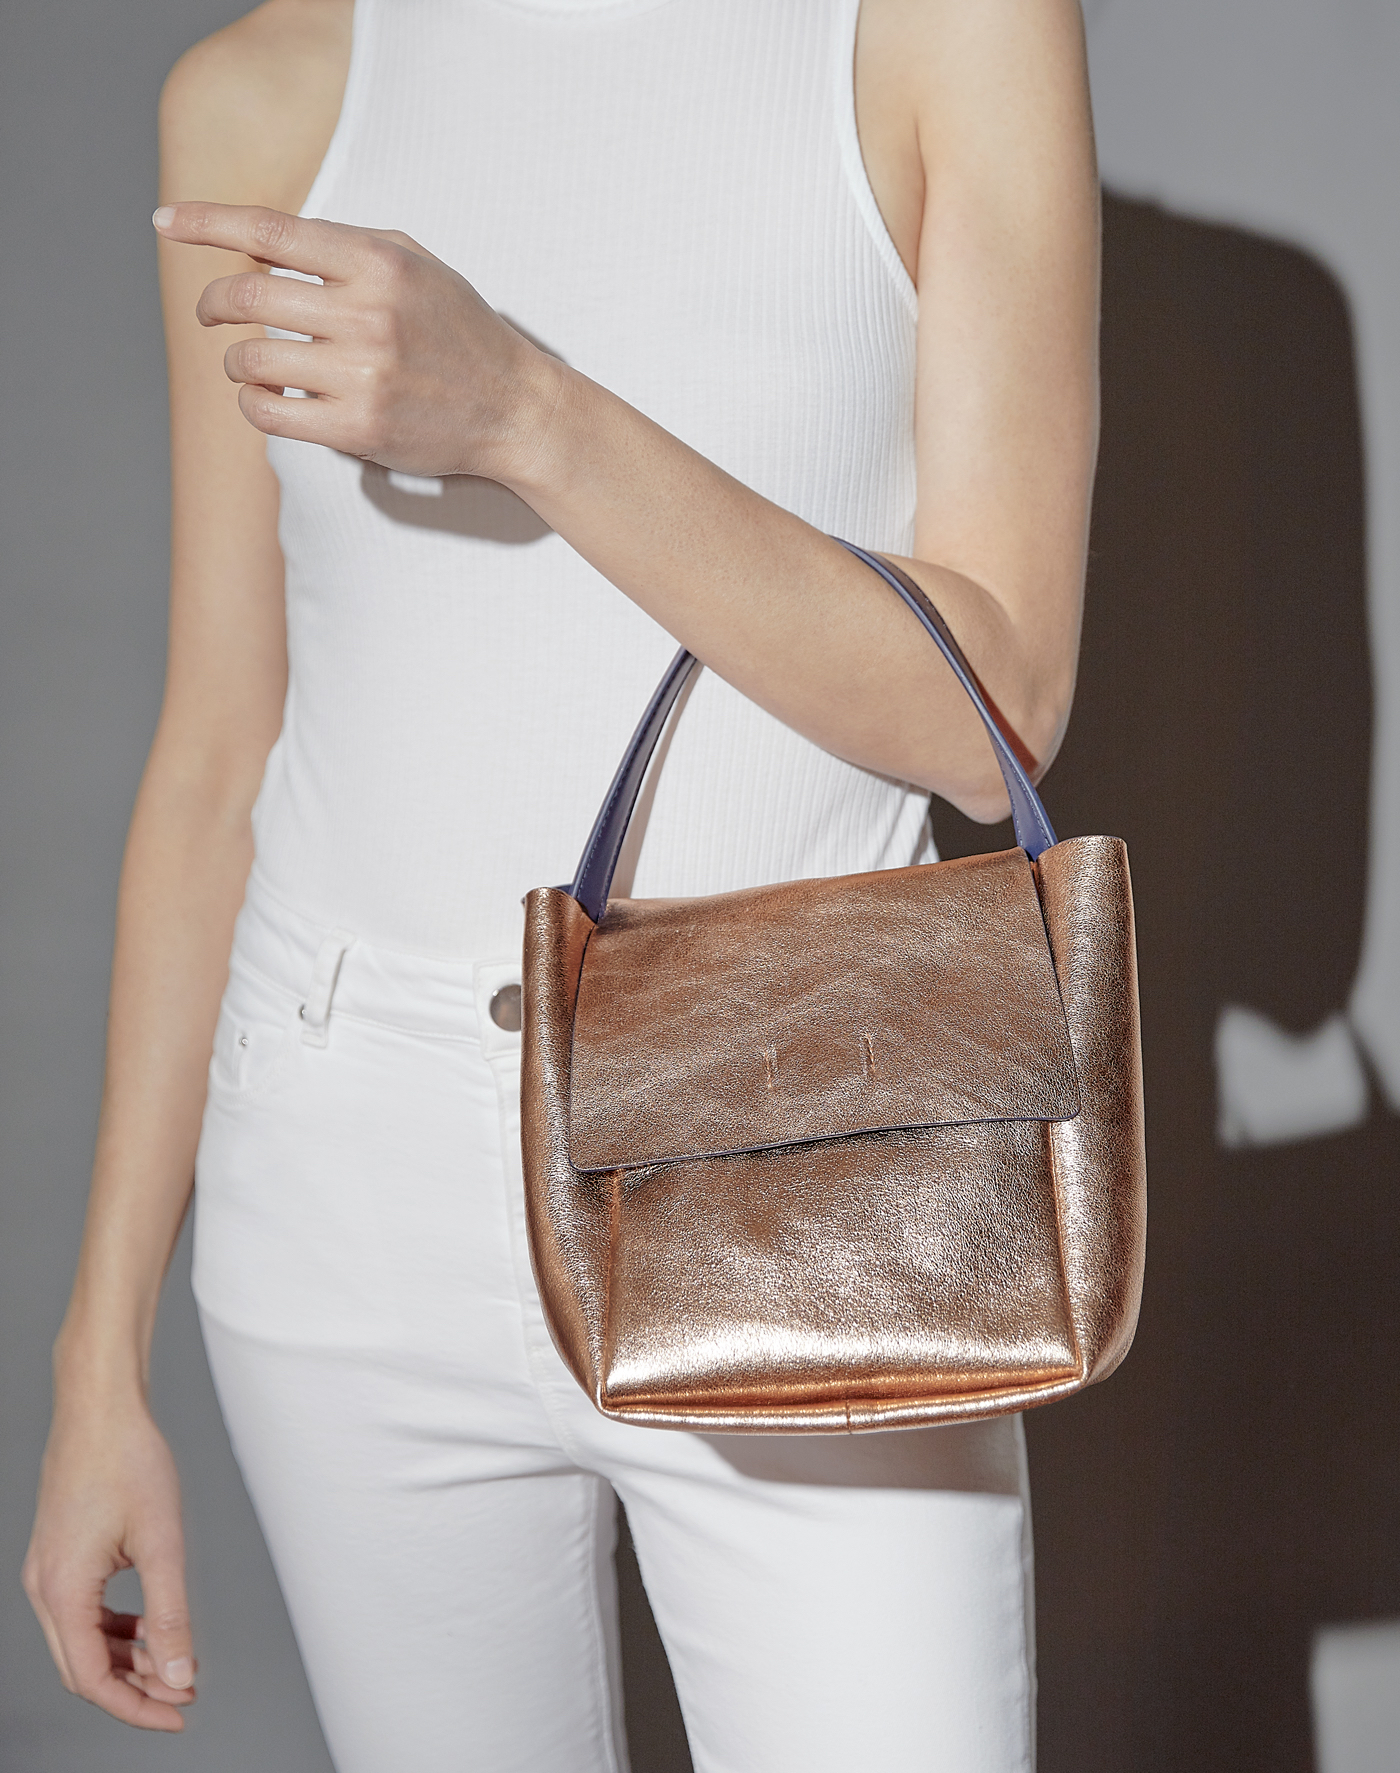 Maui Satchel in Rose Gold, $115. Photography by s Deux Lux team.